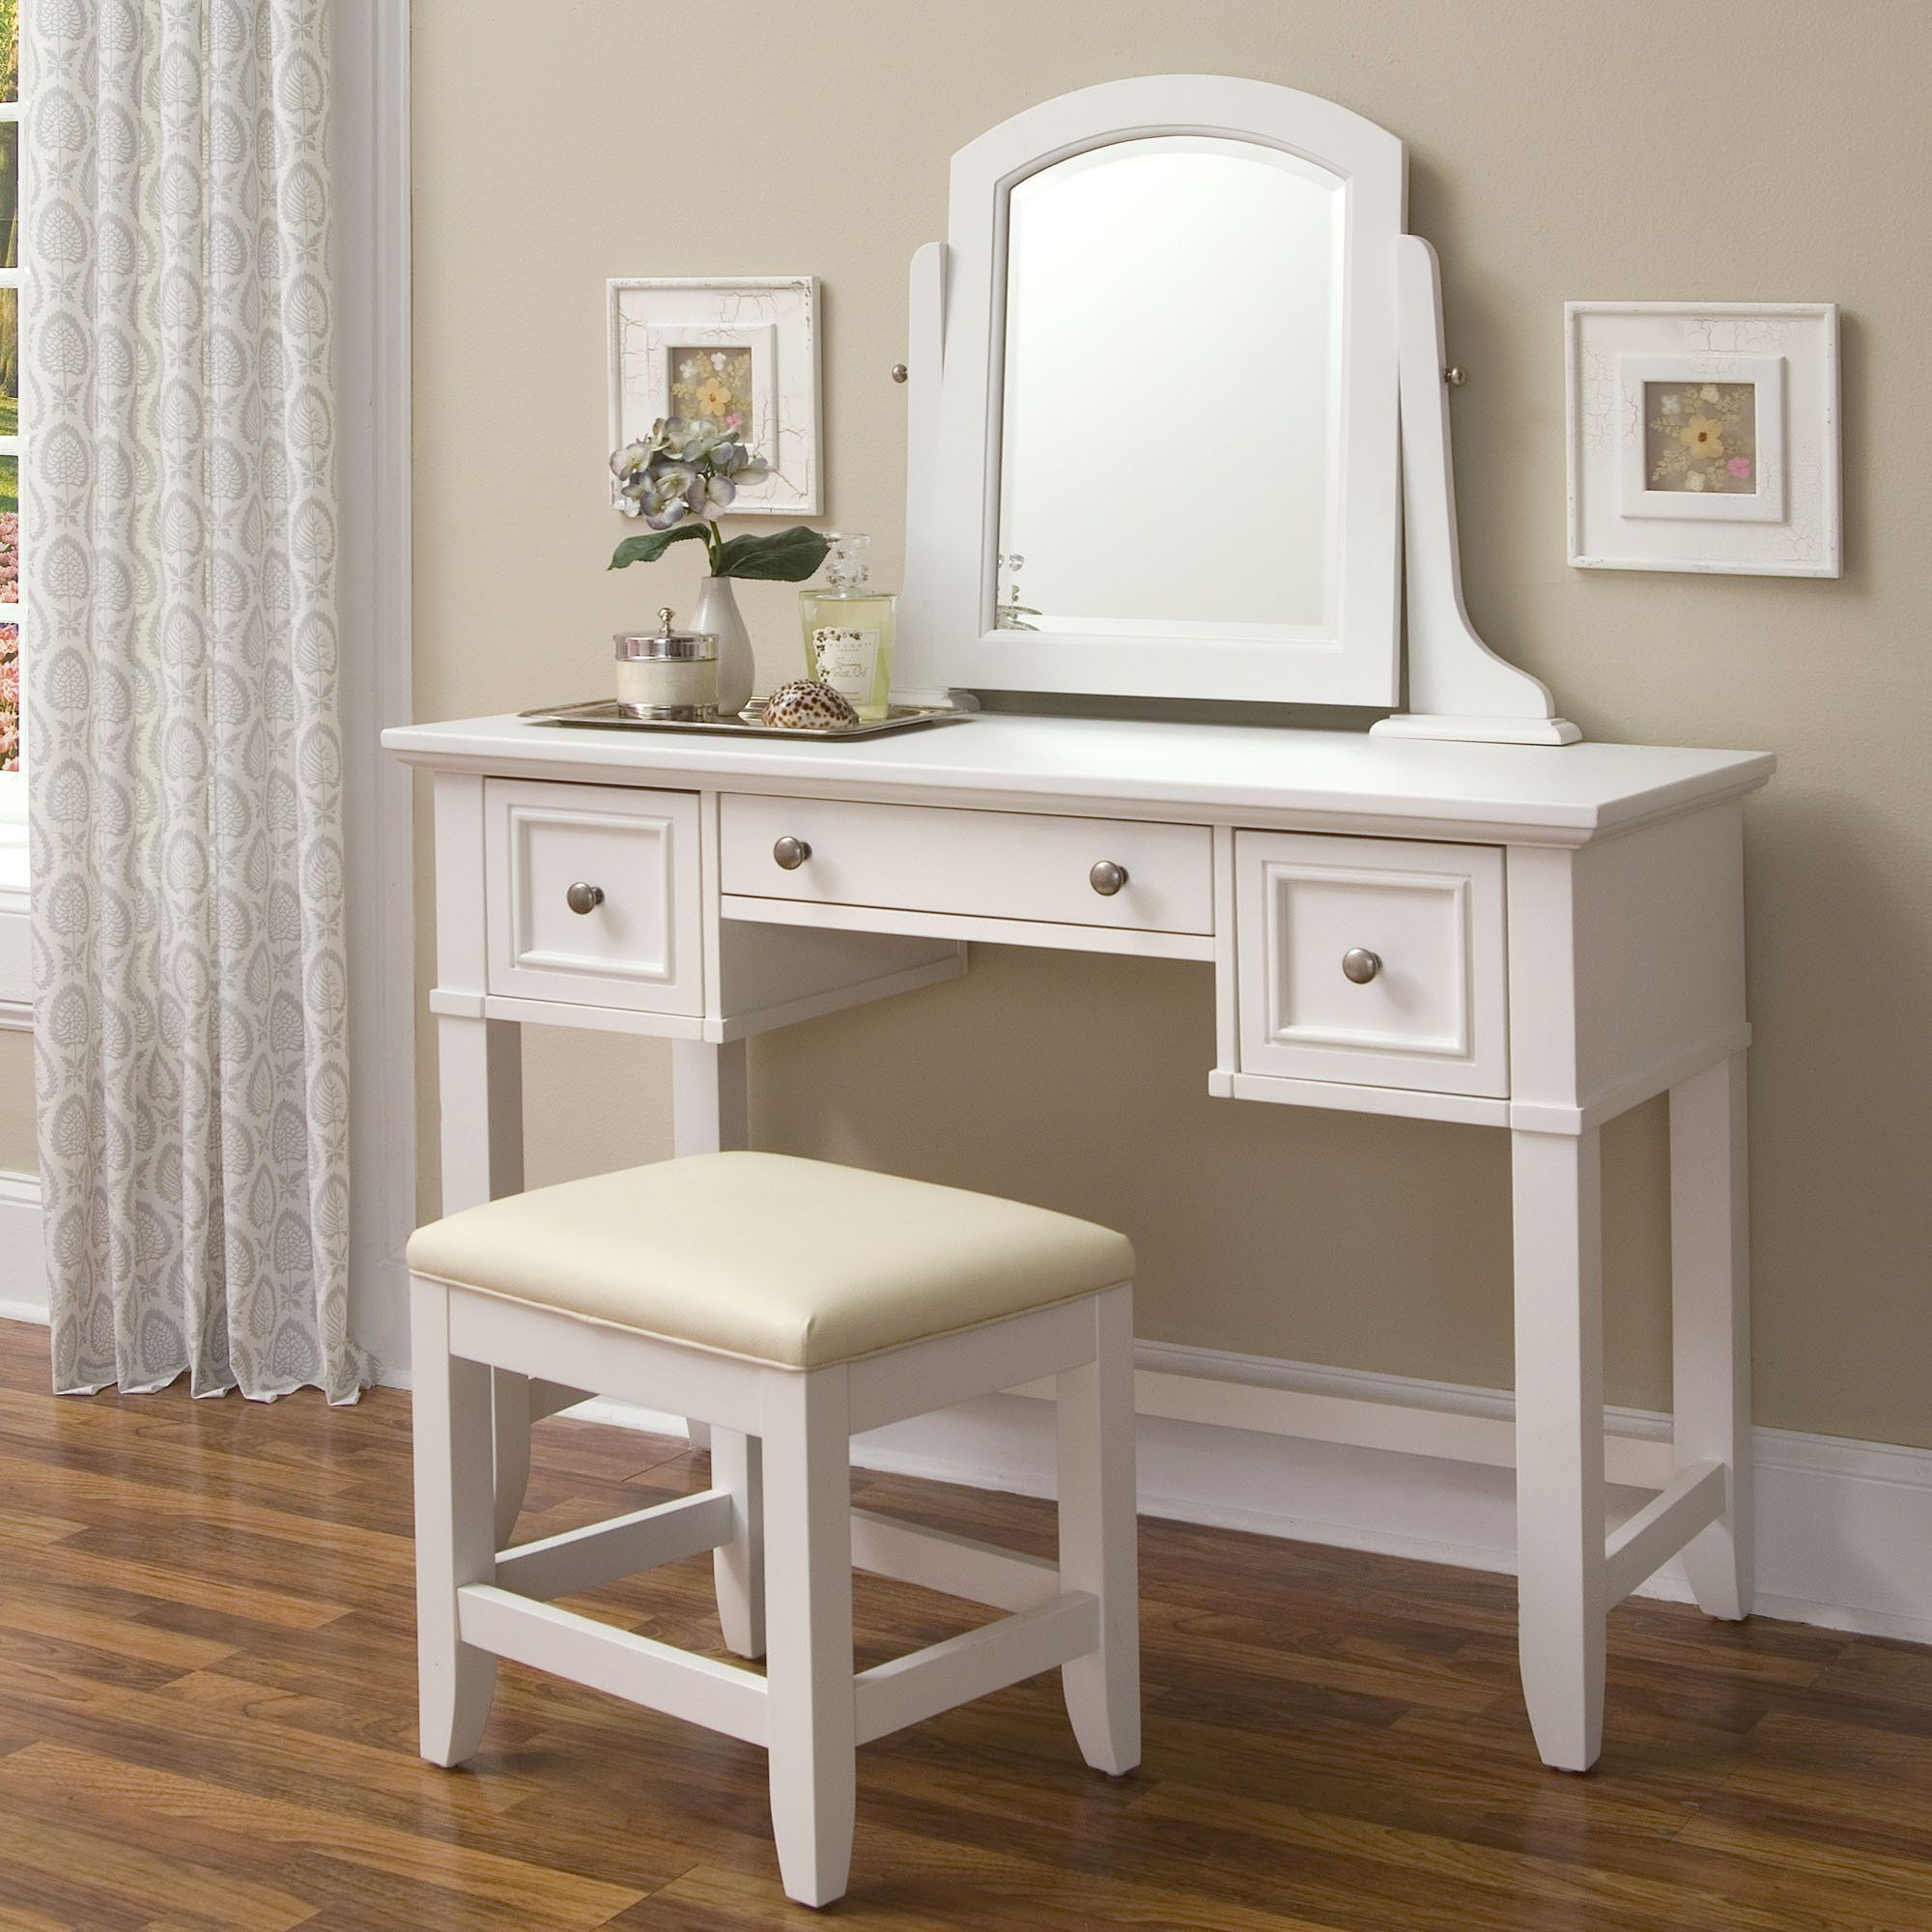 Small White Mirror Dresser With 4 Drawer And There Are Chairs Dengan Gambar Home Fashion Ide Dekorasi Rumah Mebel